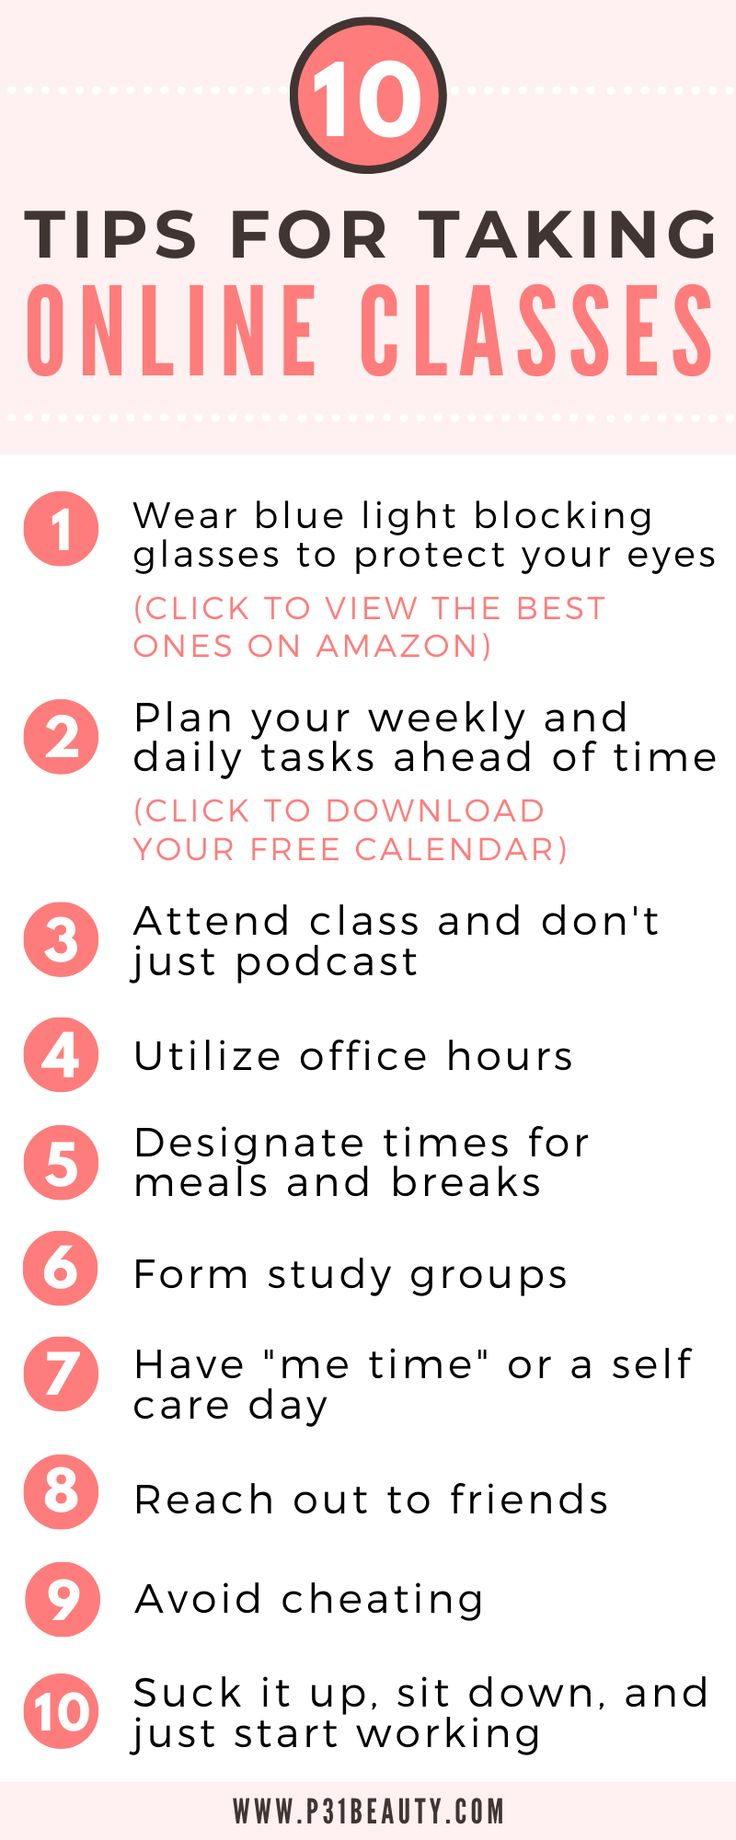 Are you struggling with online classes or feeling